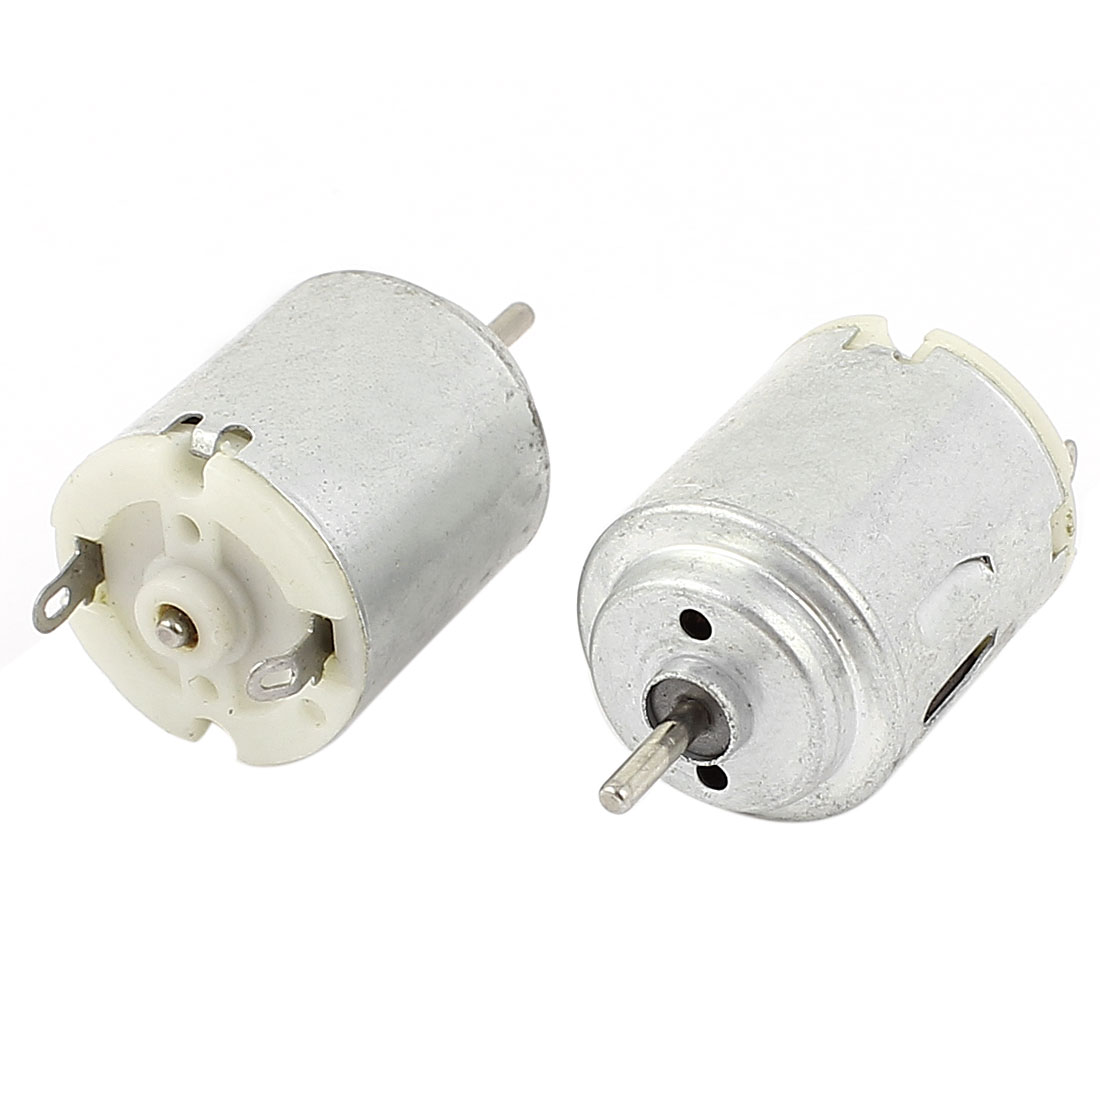 2 Pcs DC 3-6V 16500 RPM Rotary Speed High Torque Micro Motor for DIY Toy Ship